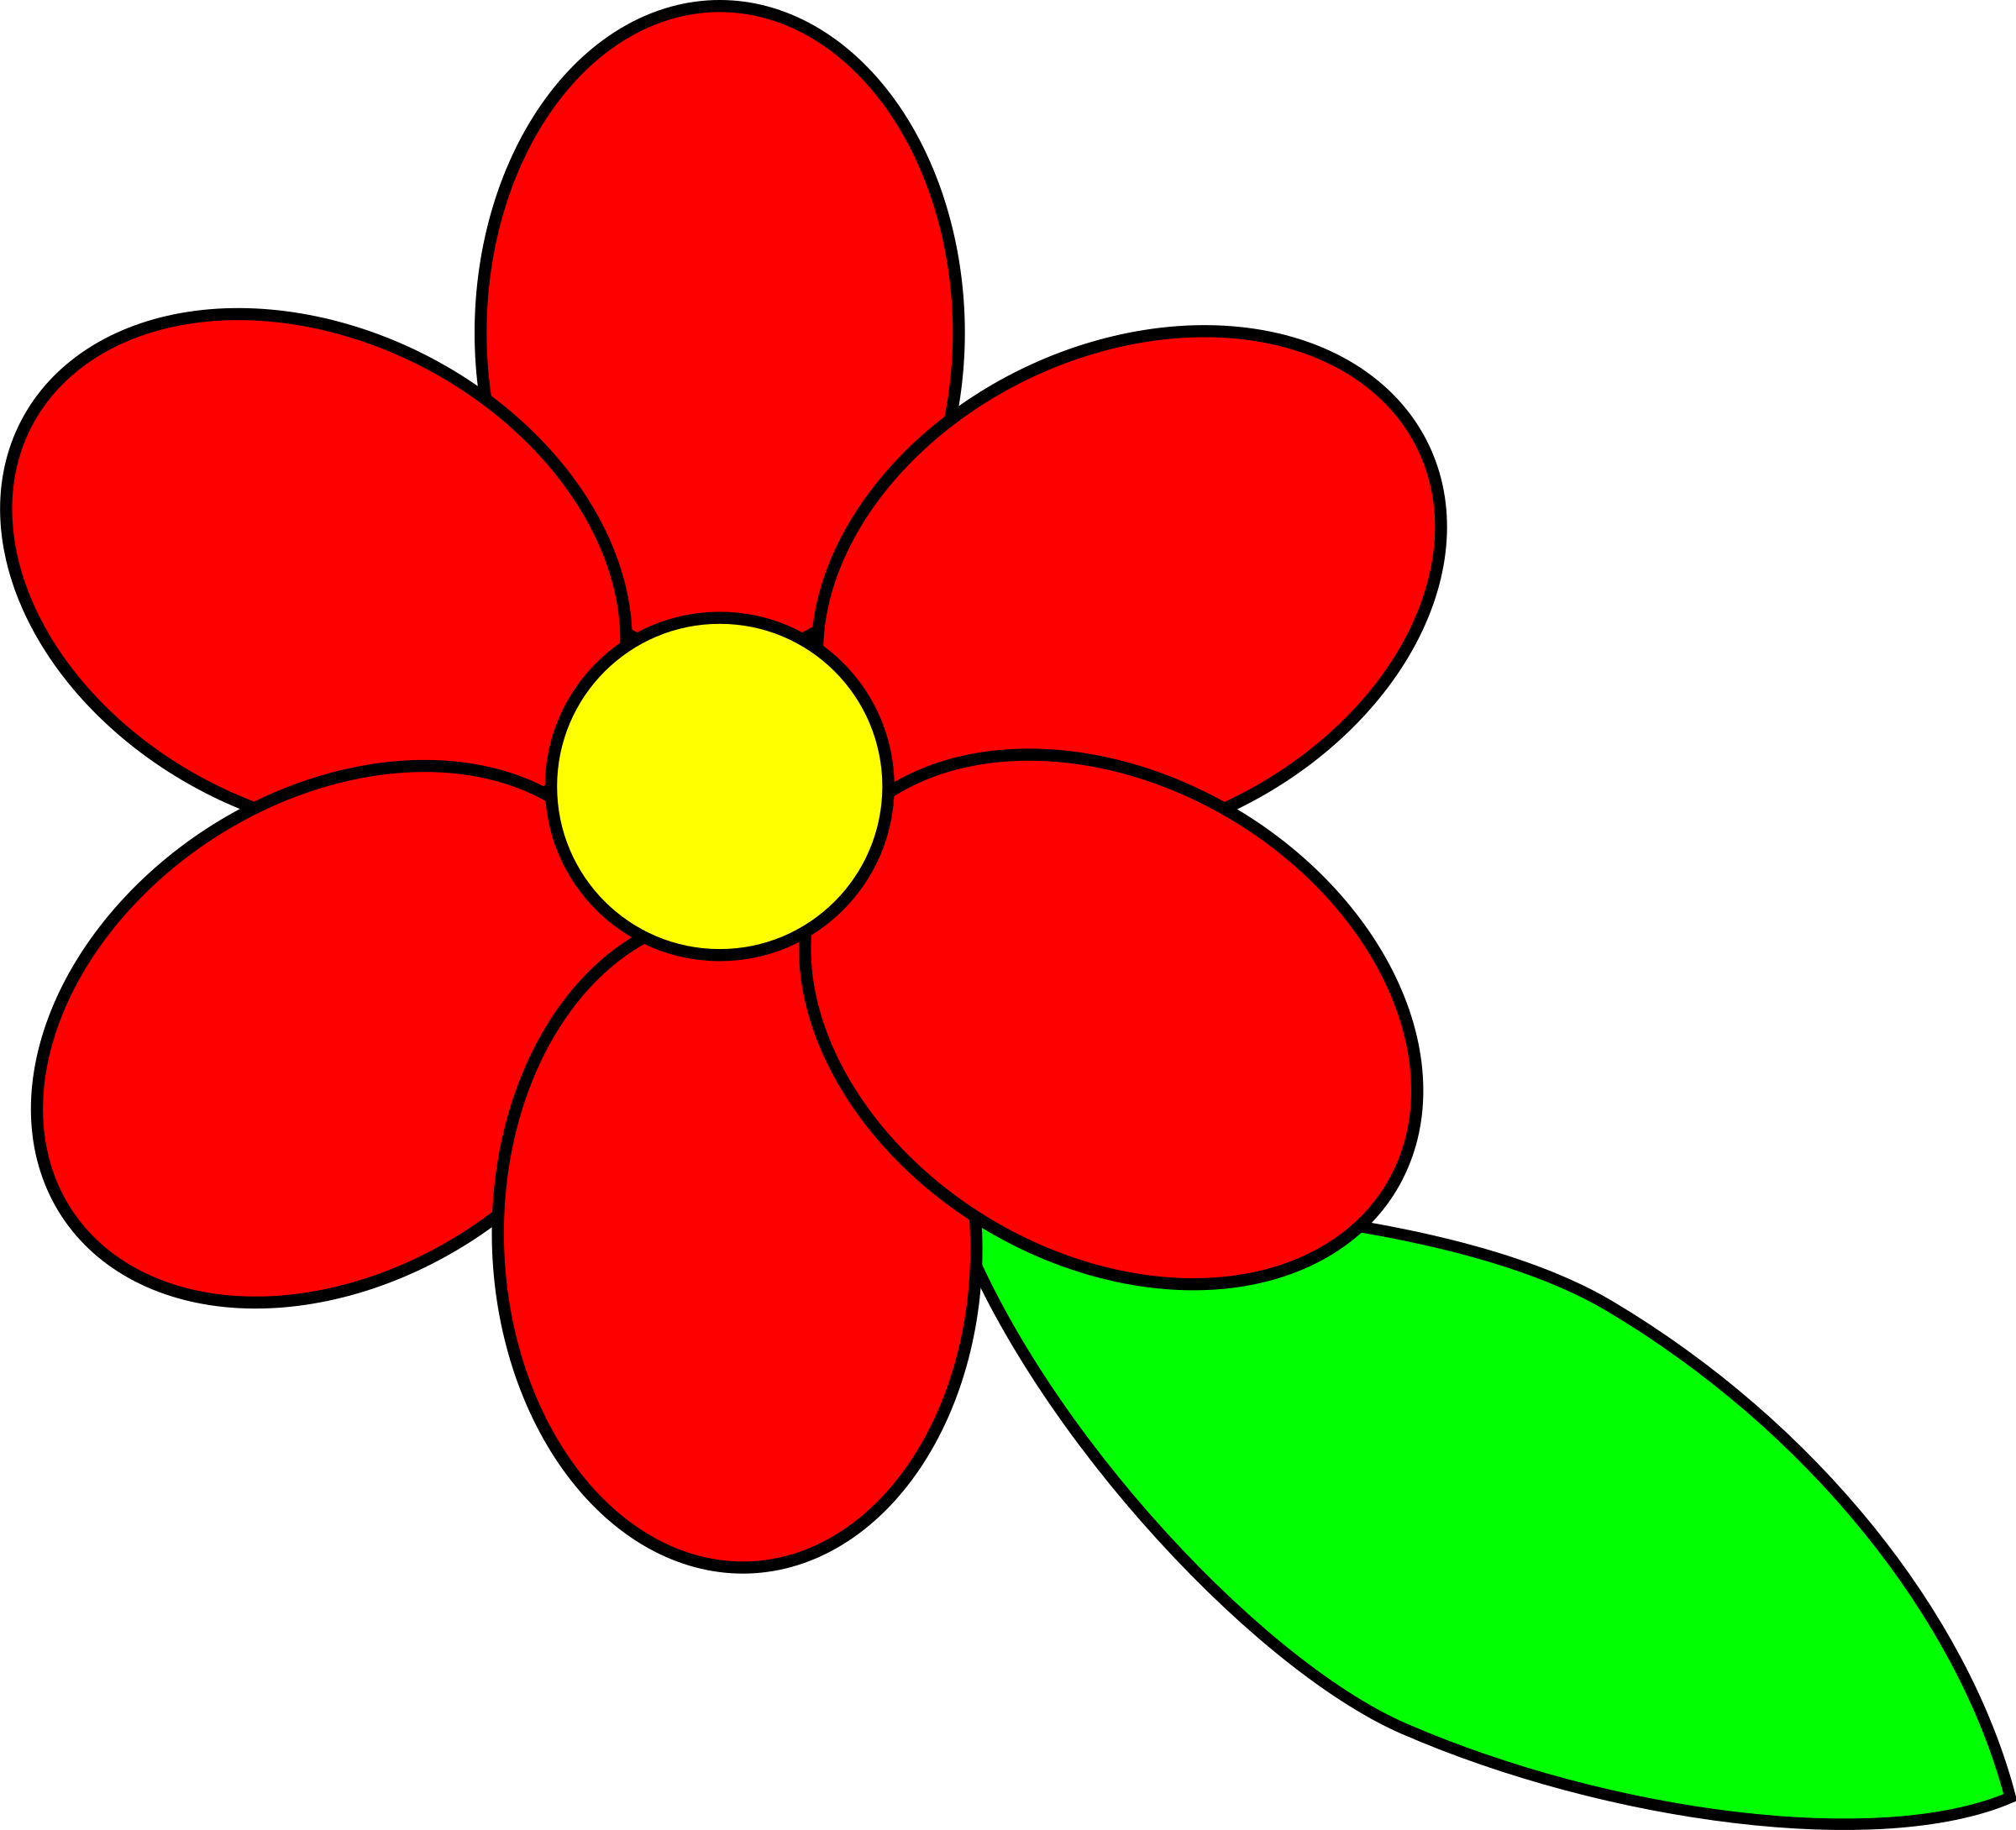 Flower six red petals black outline green leaf by palomaironique